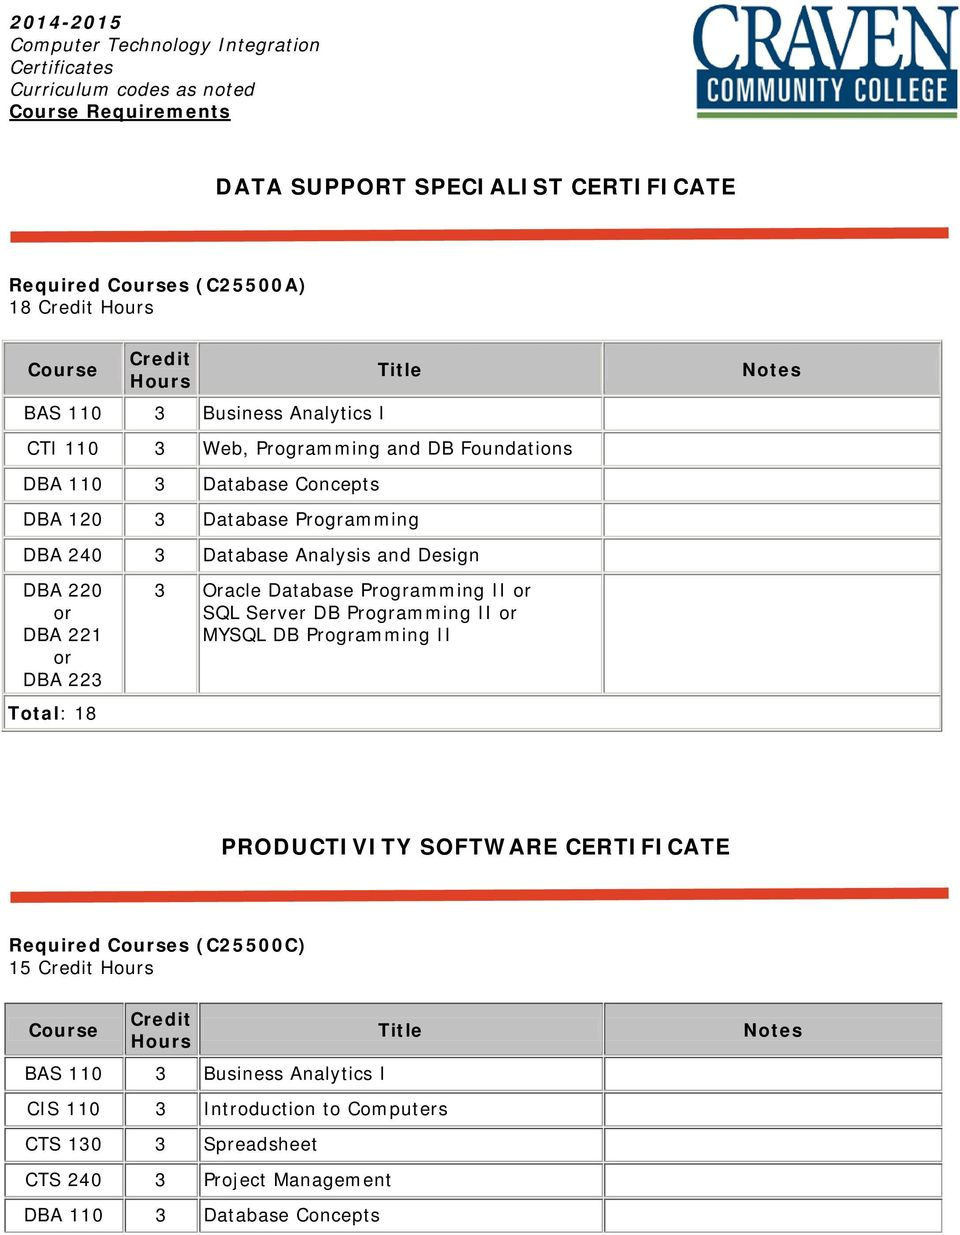 Data Support Specialist Certificate Pdf Free Download